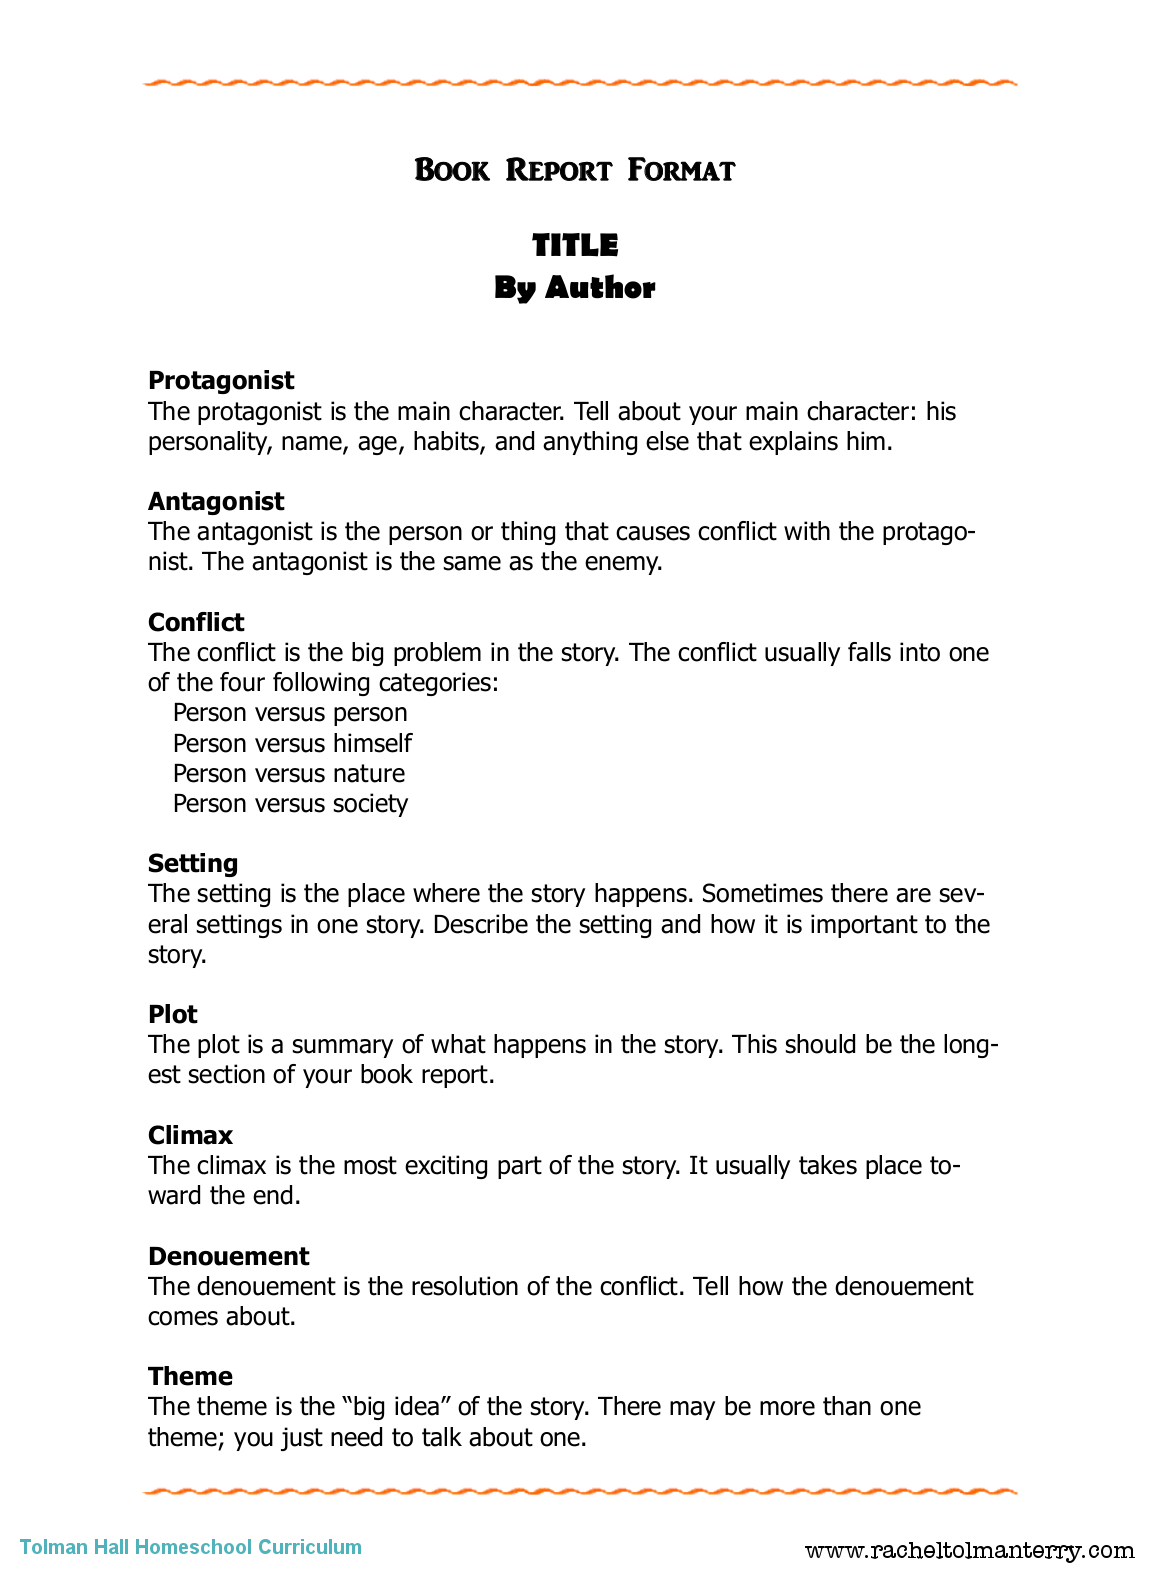 how to write a college book report book report essay examplebook  phd thesis in disaster risk management jackson homework solution book essay example resume resume college book